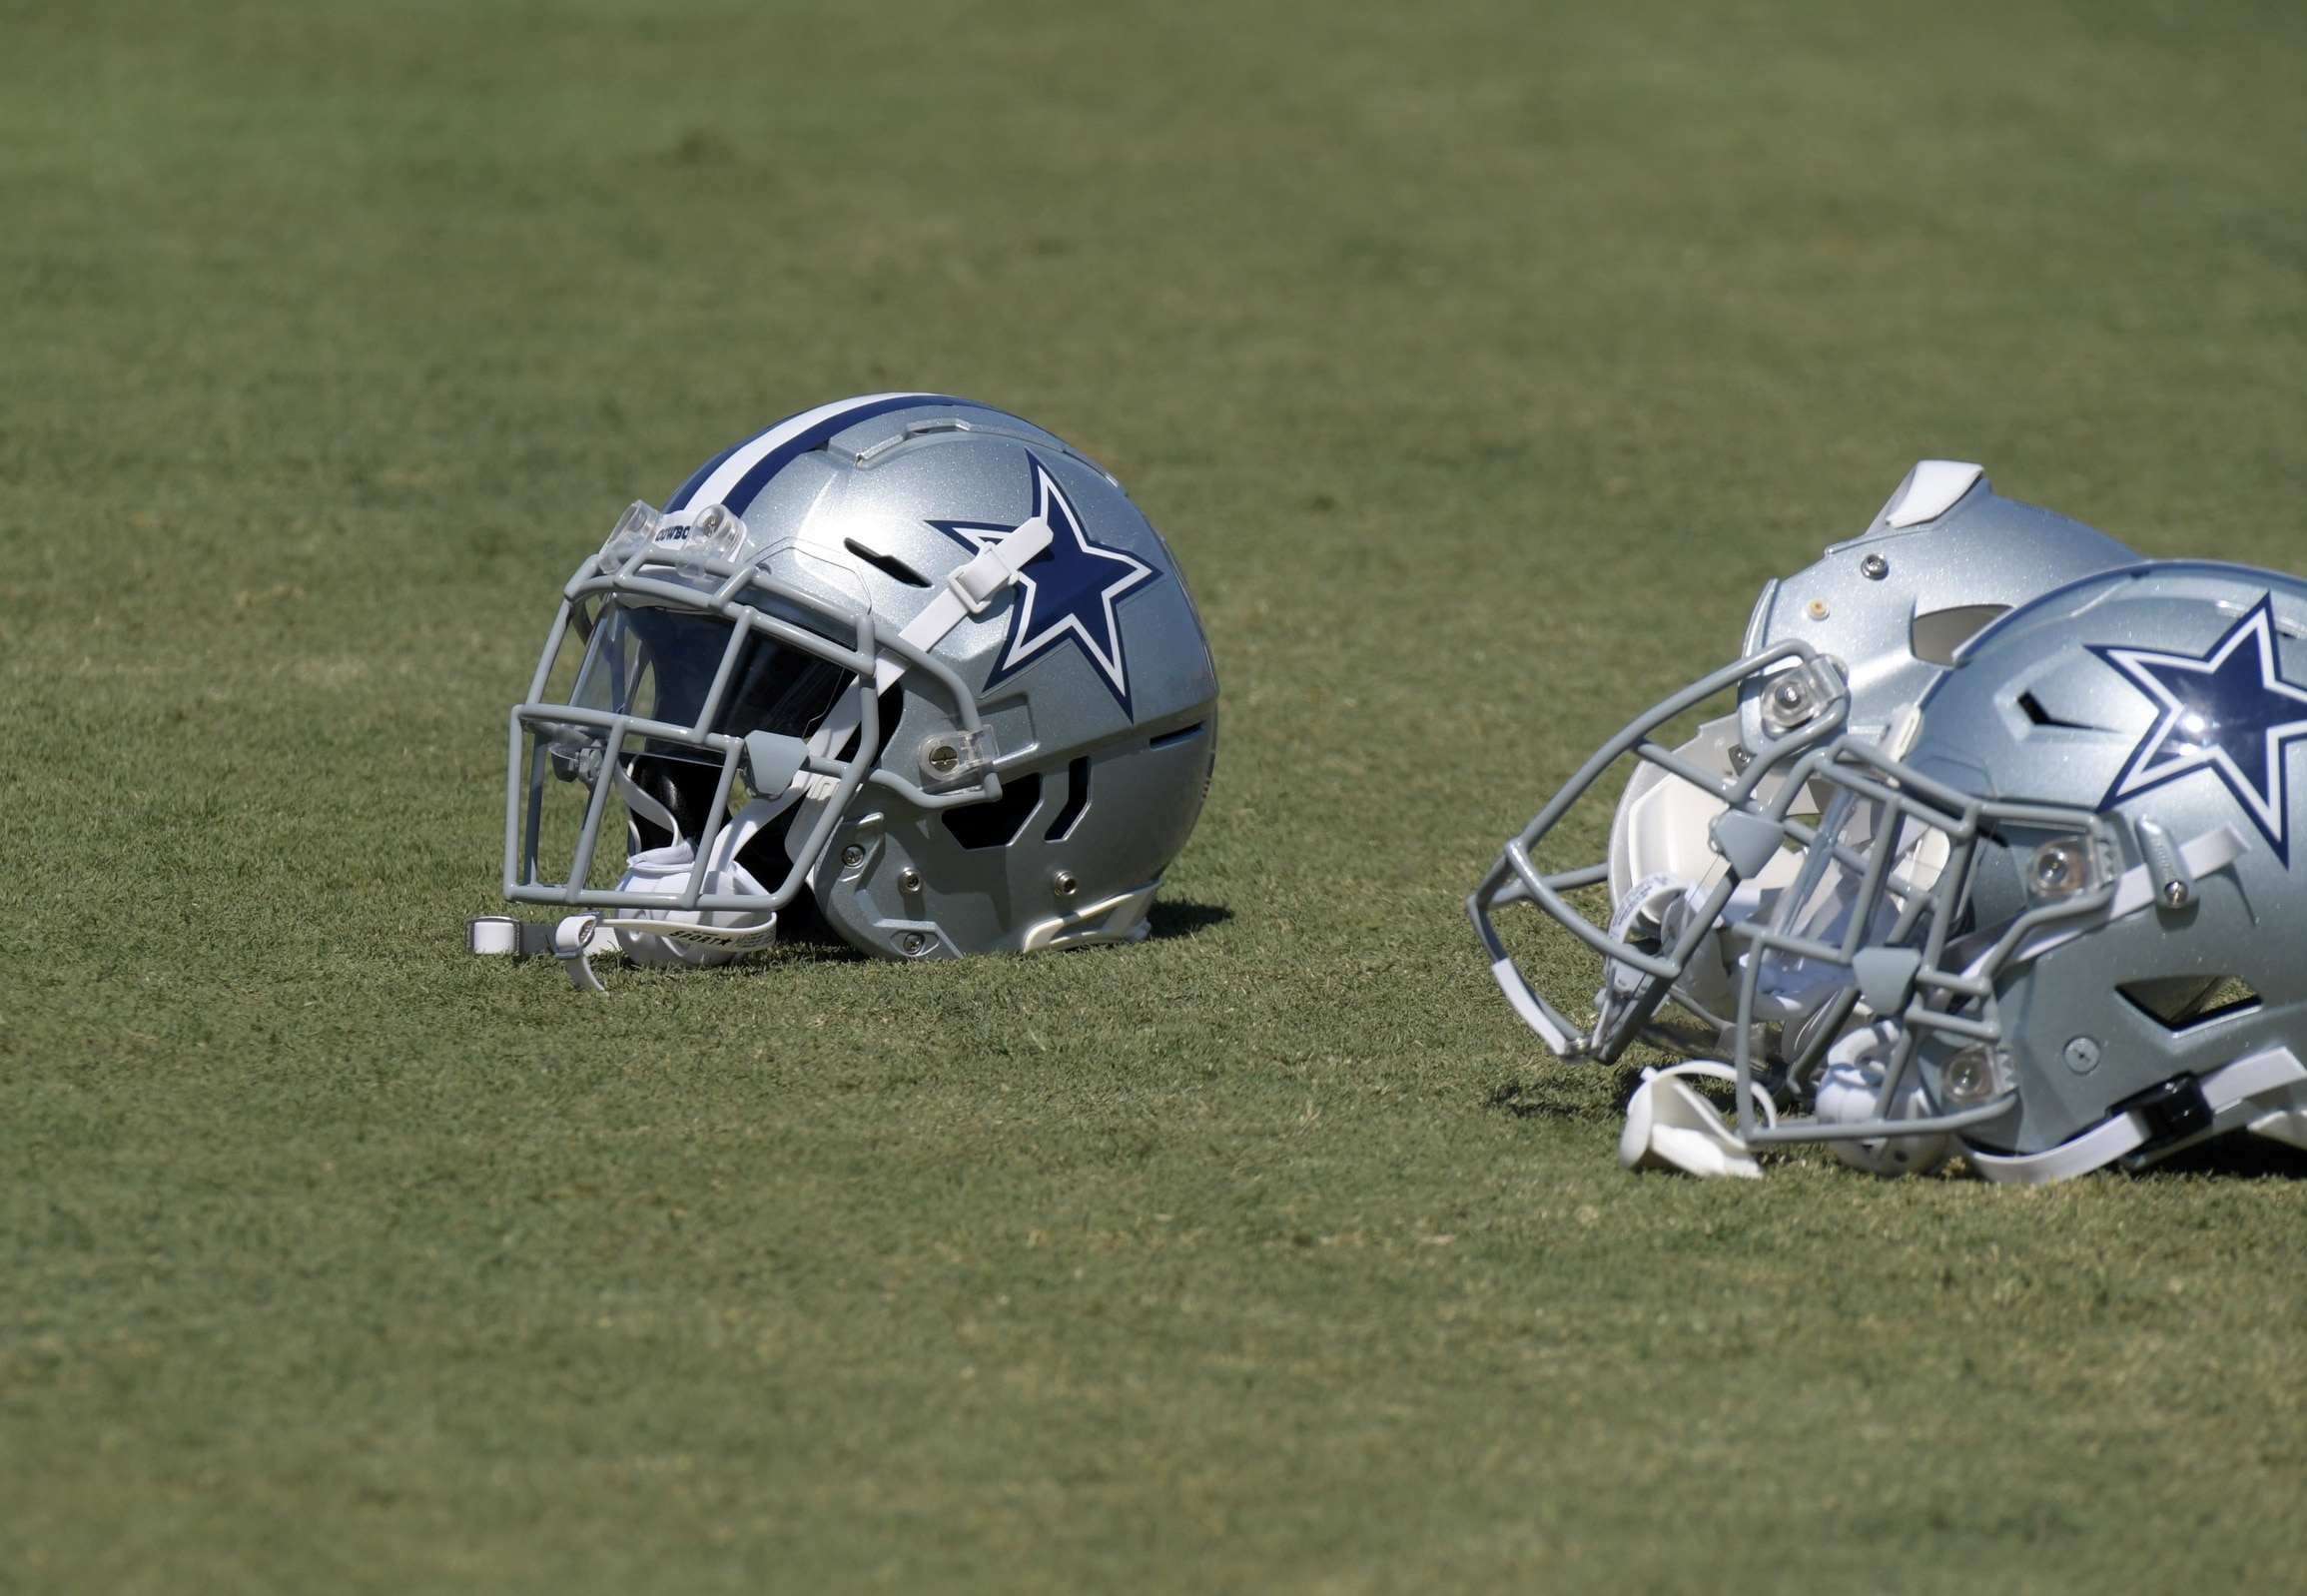 Former Dallas Cowboys player Marion Barber arrested in Texas